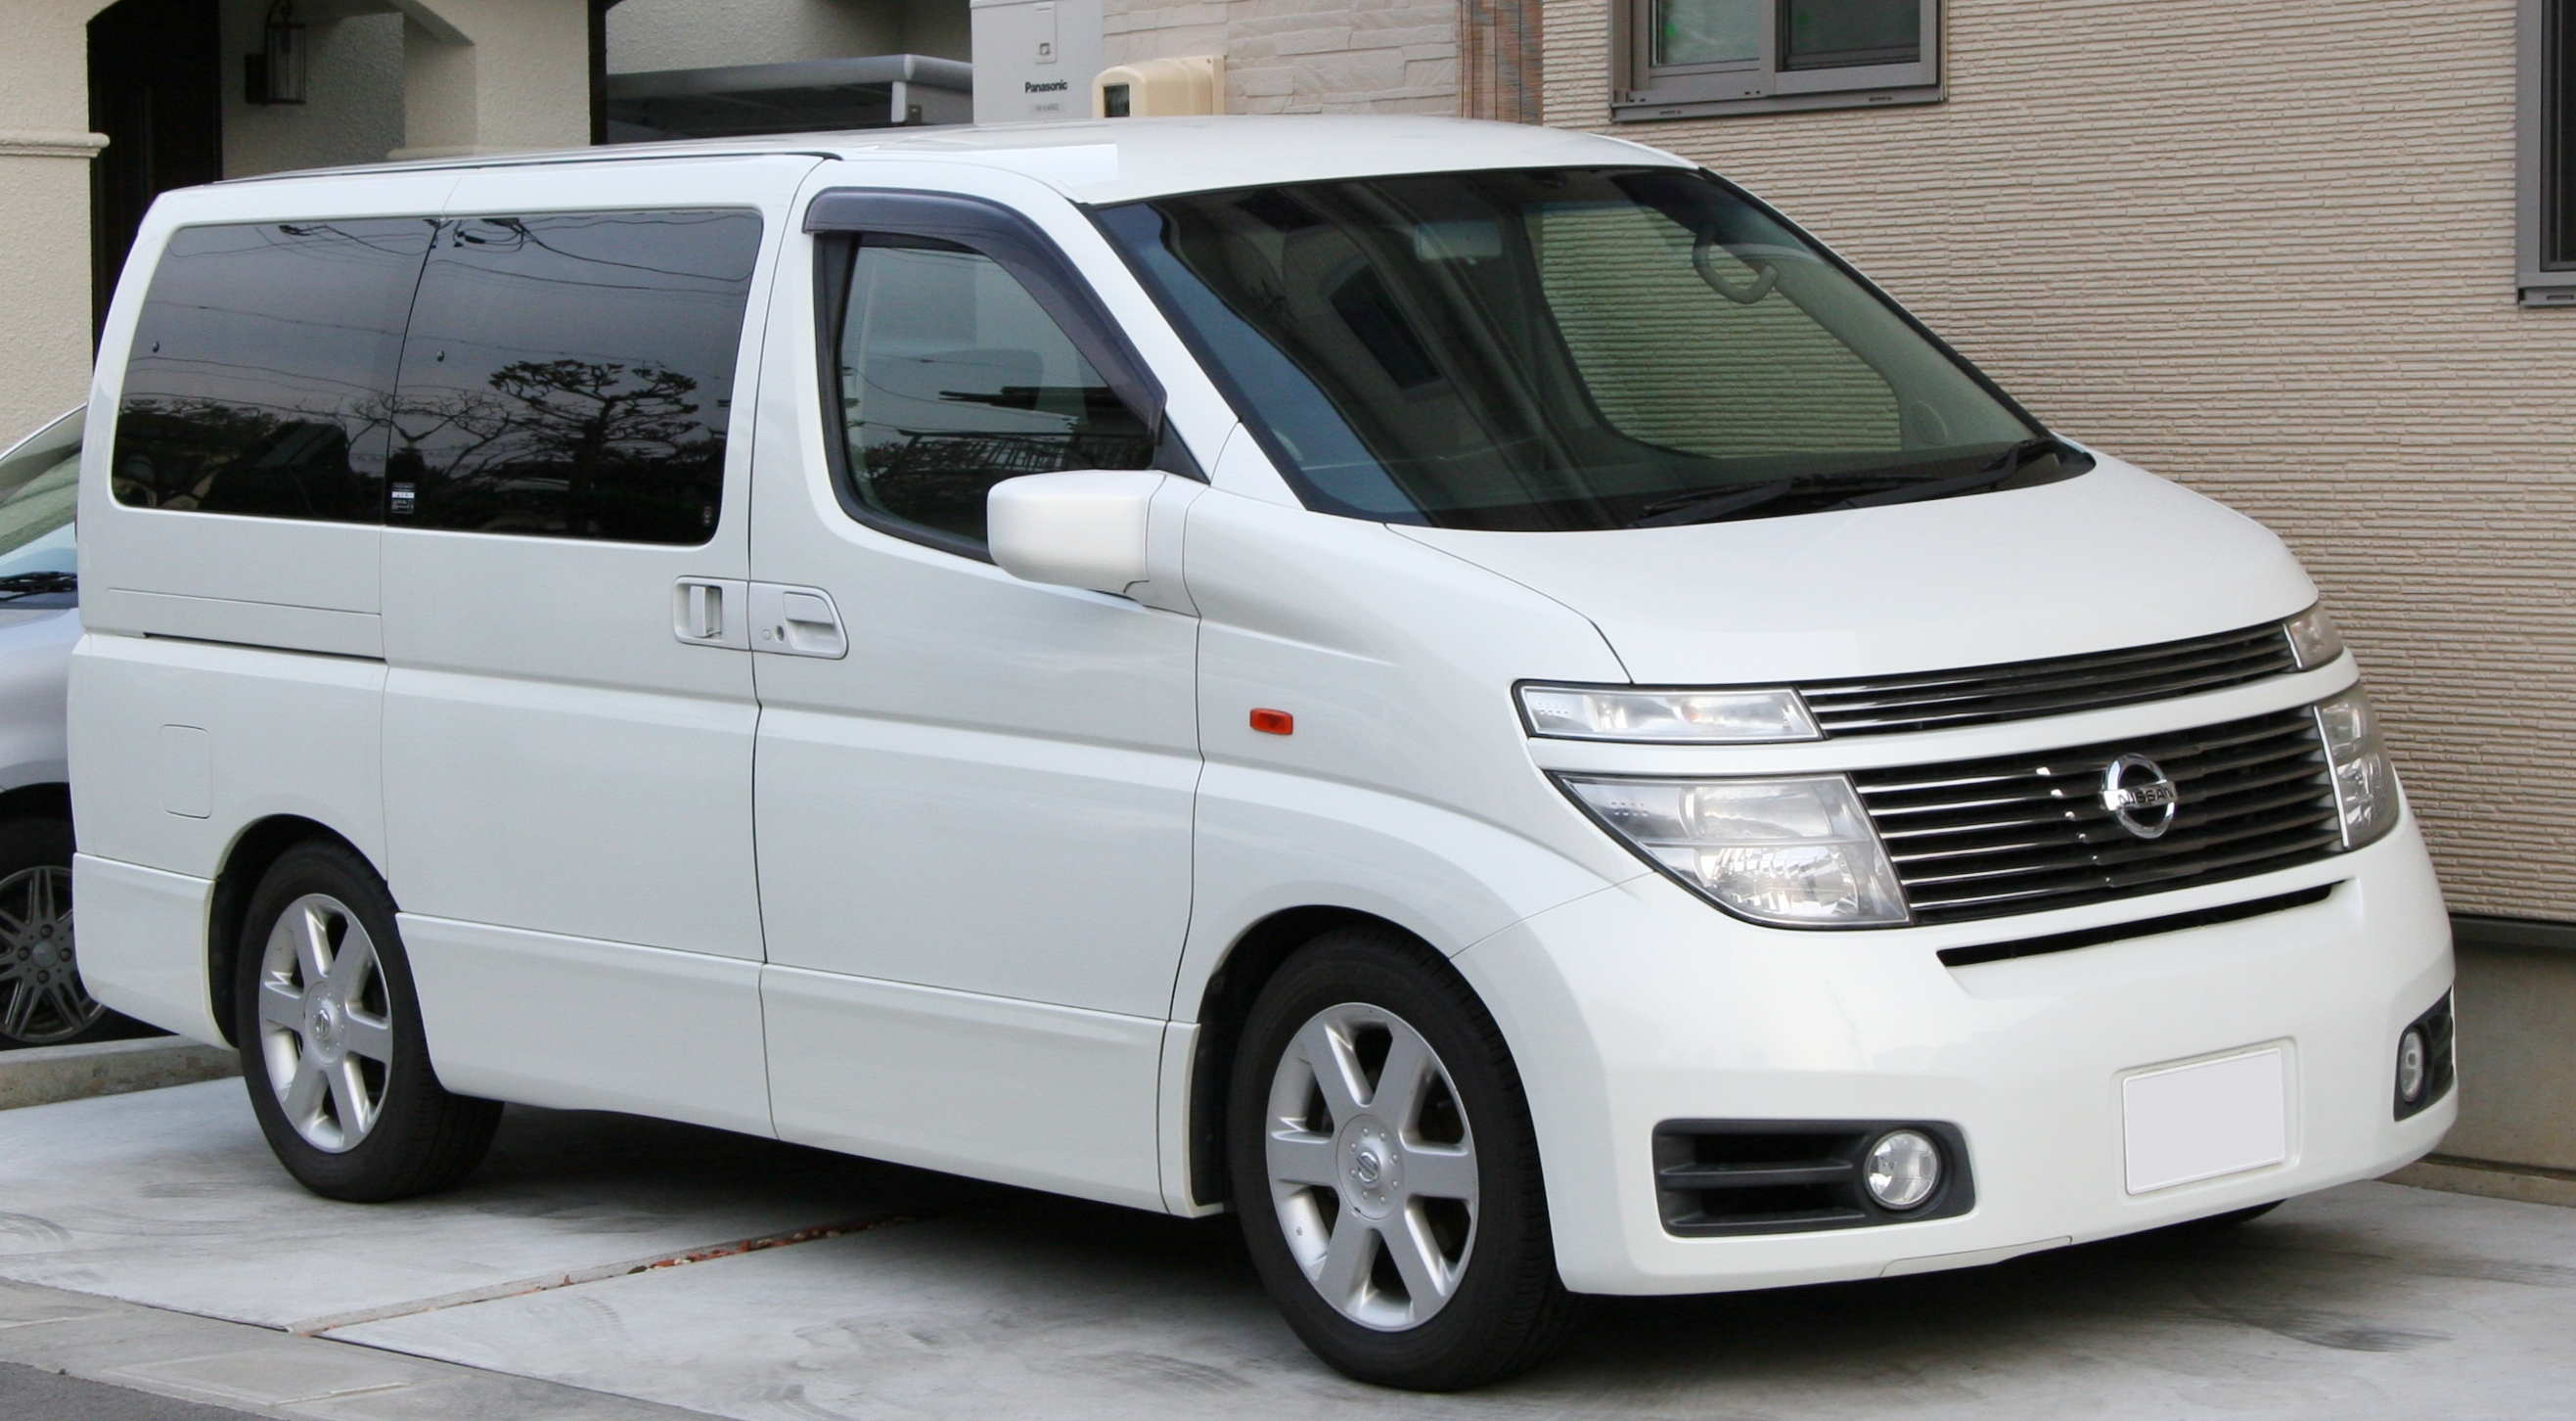 2009 Nissan Elgrand E51 Pictures Information And